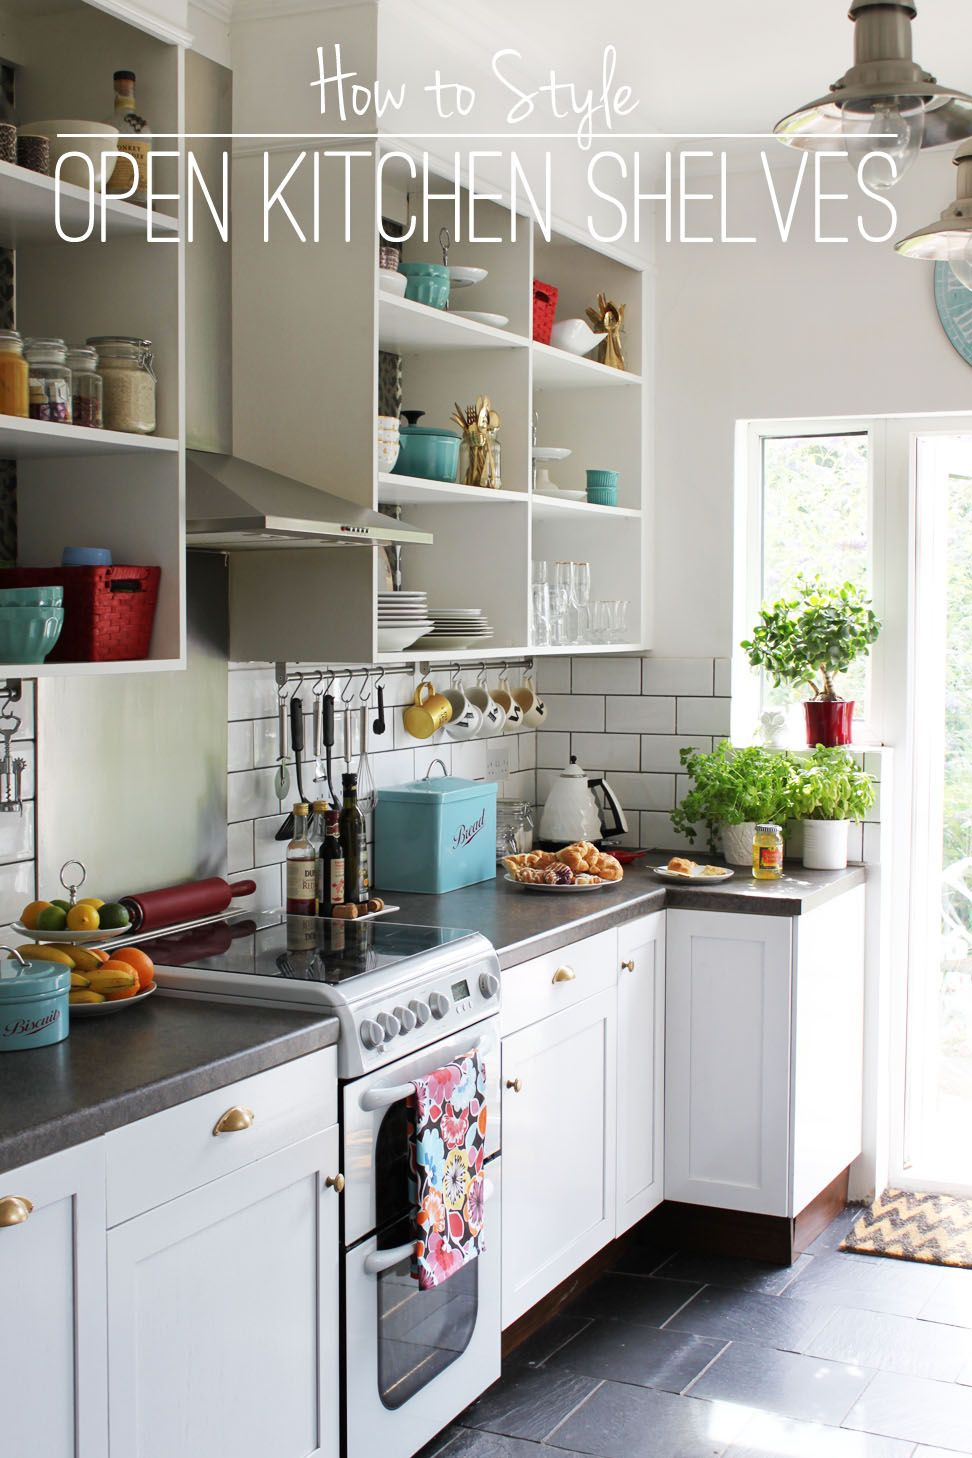 open kitchen shelves yes makes you wanna keep them clean and shelving